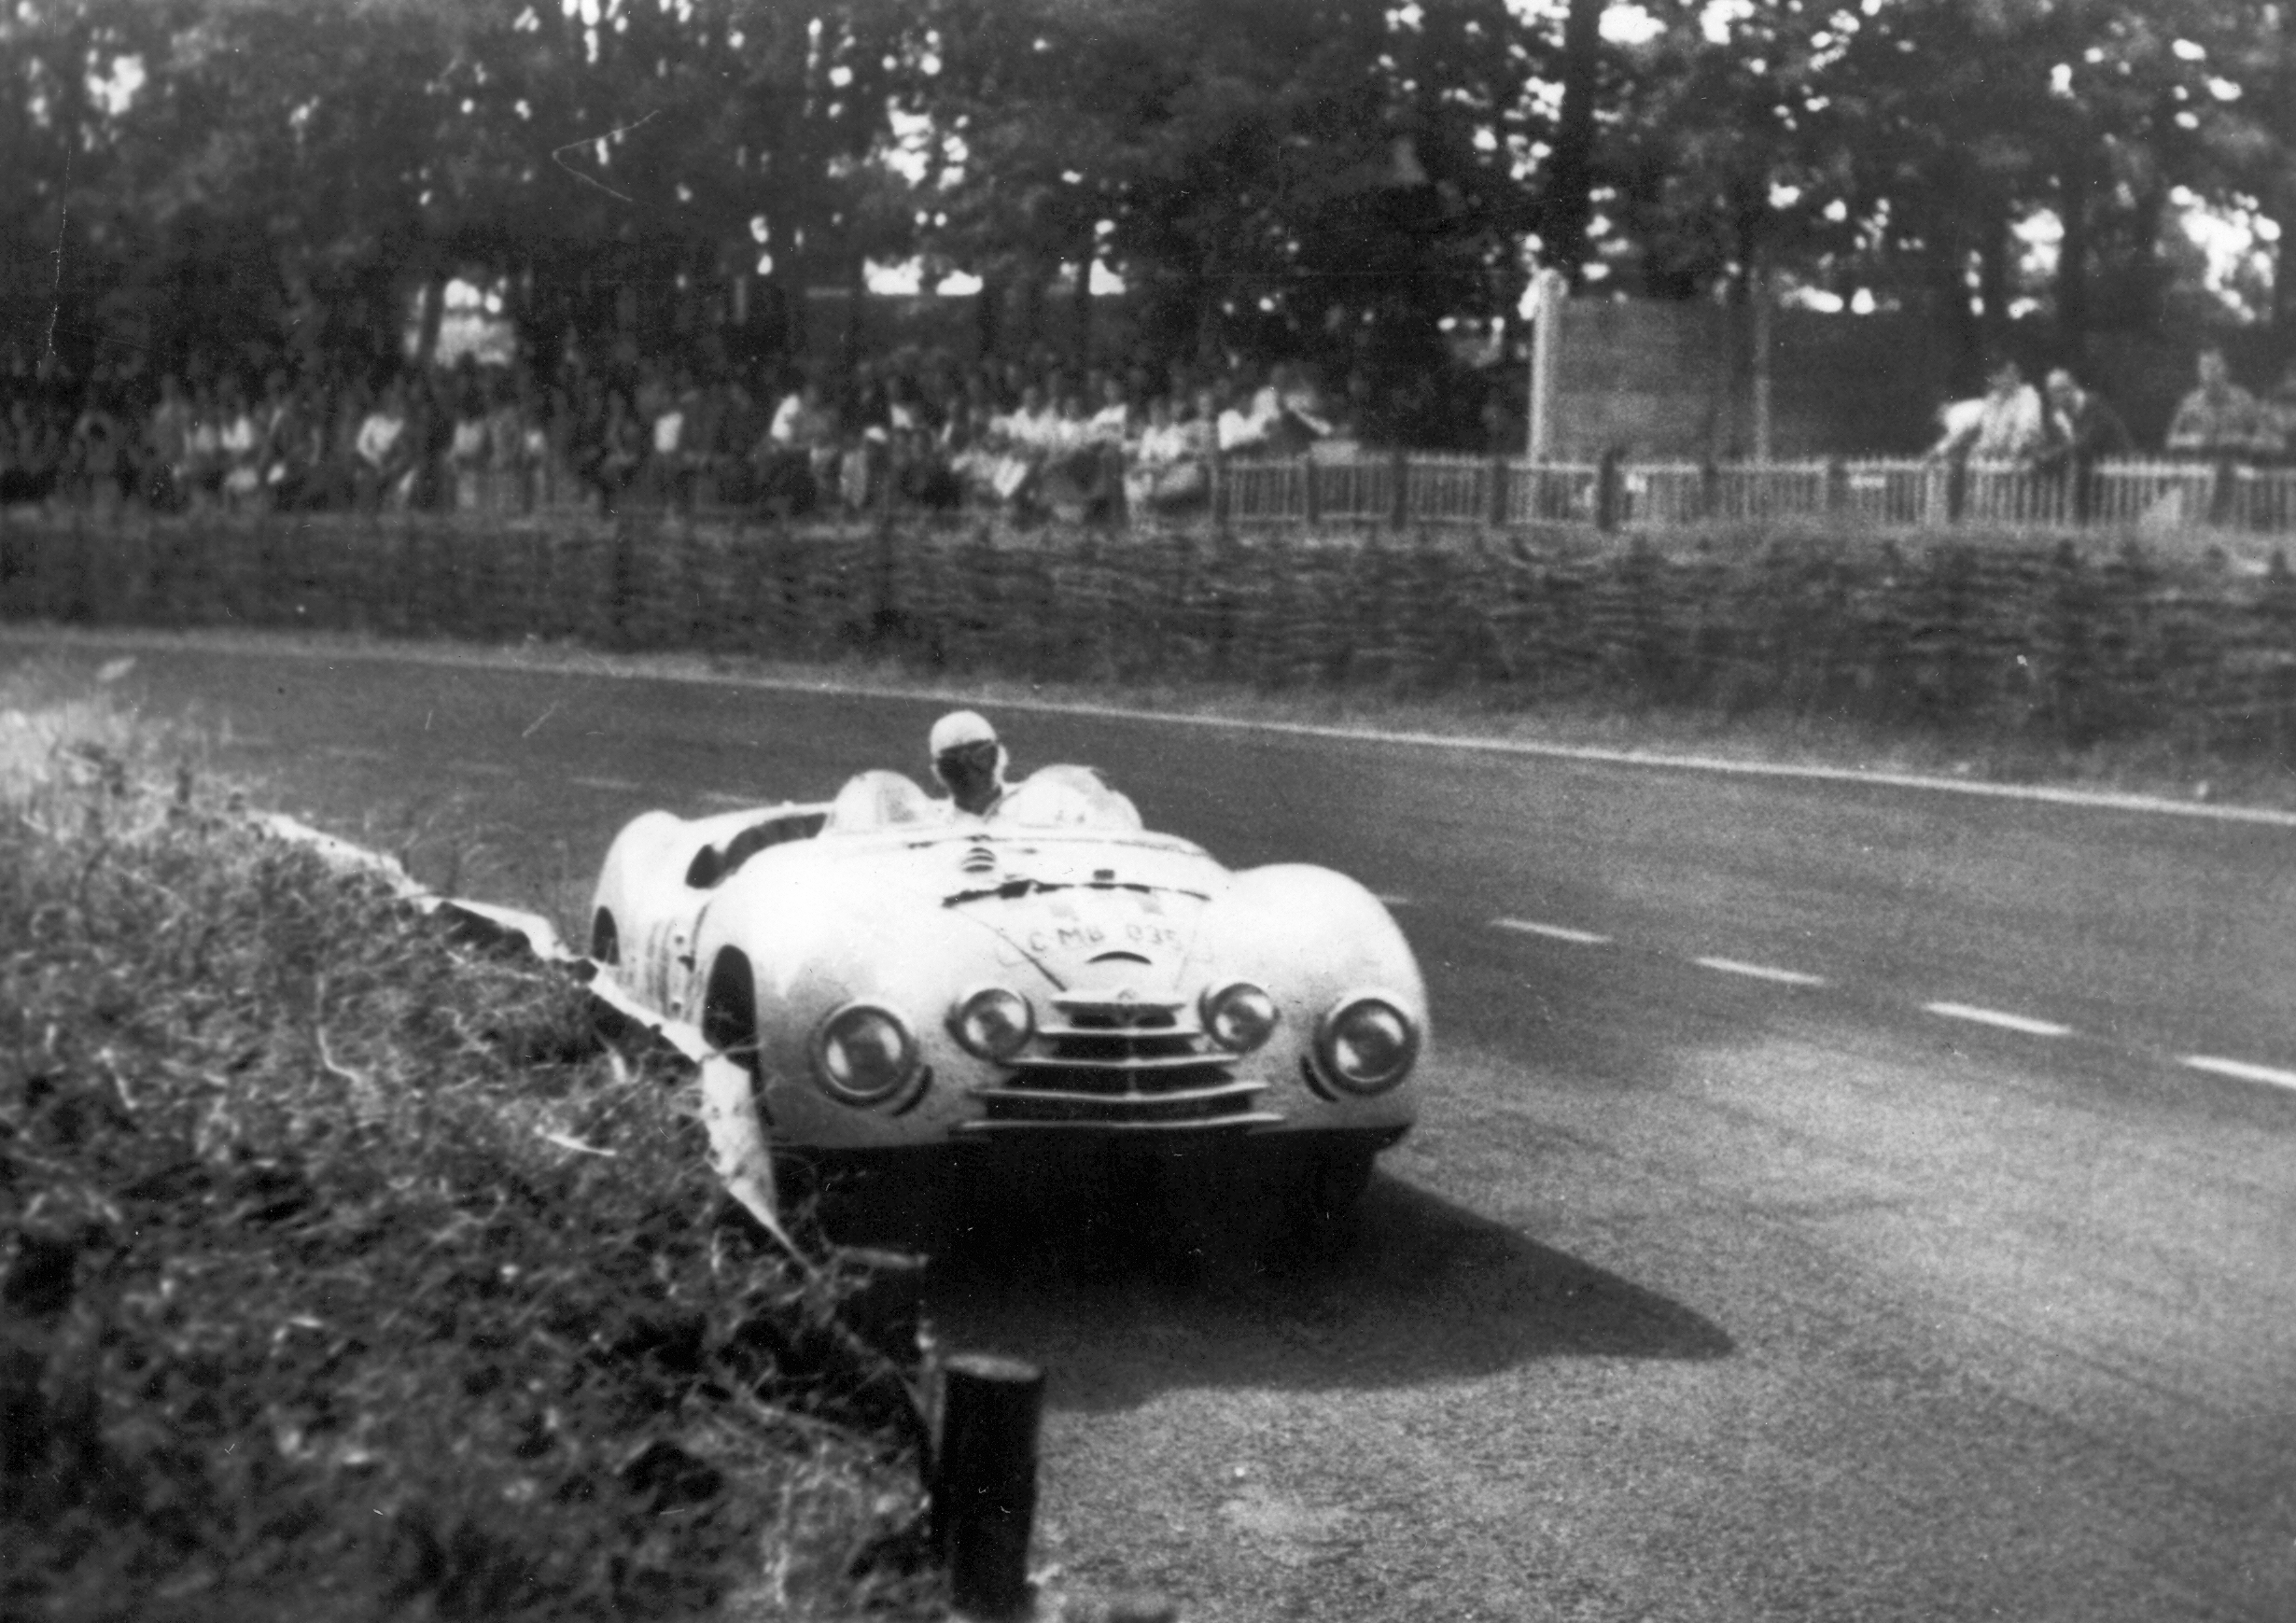 70 years ago today: SKODA's only start in the famous 24 Hours of Le Mans - Image 2